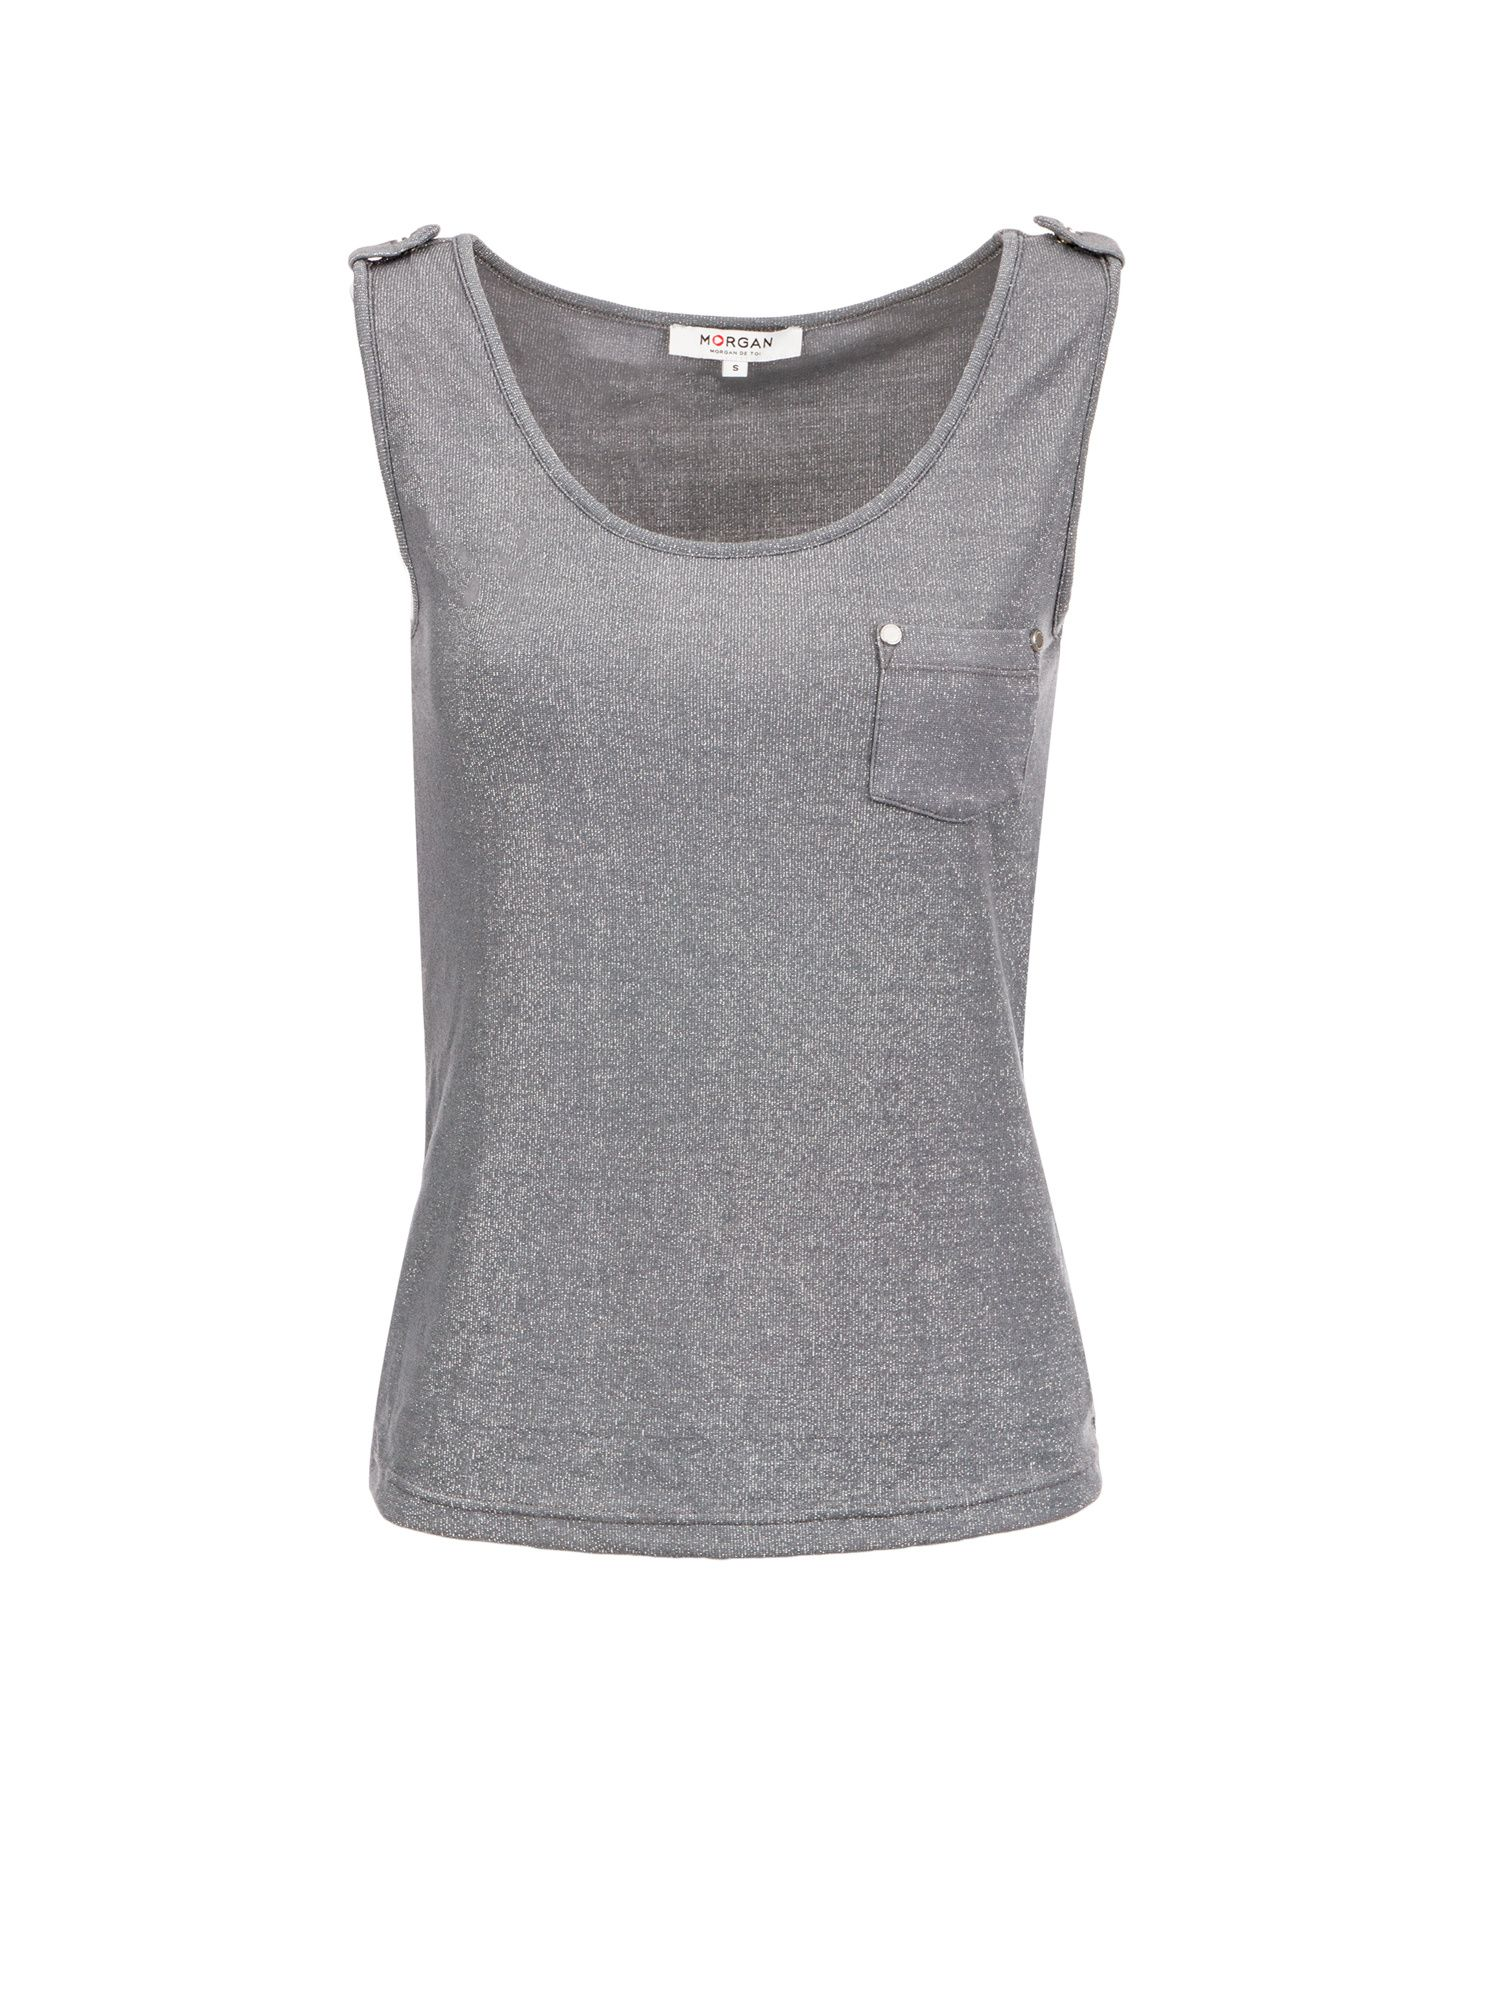 Morgan Metallic Knit Tank Top, Light Grey